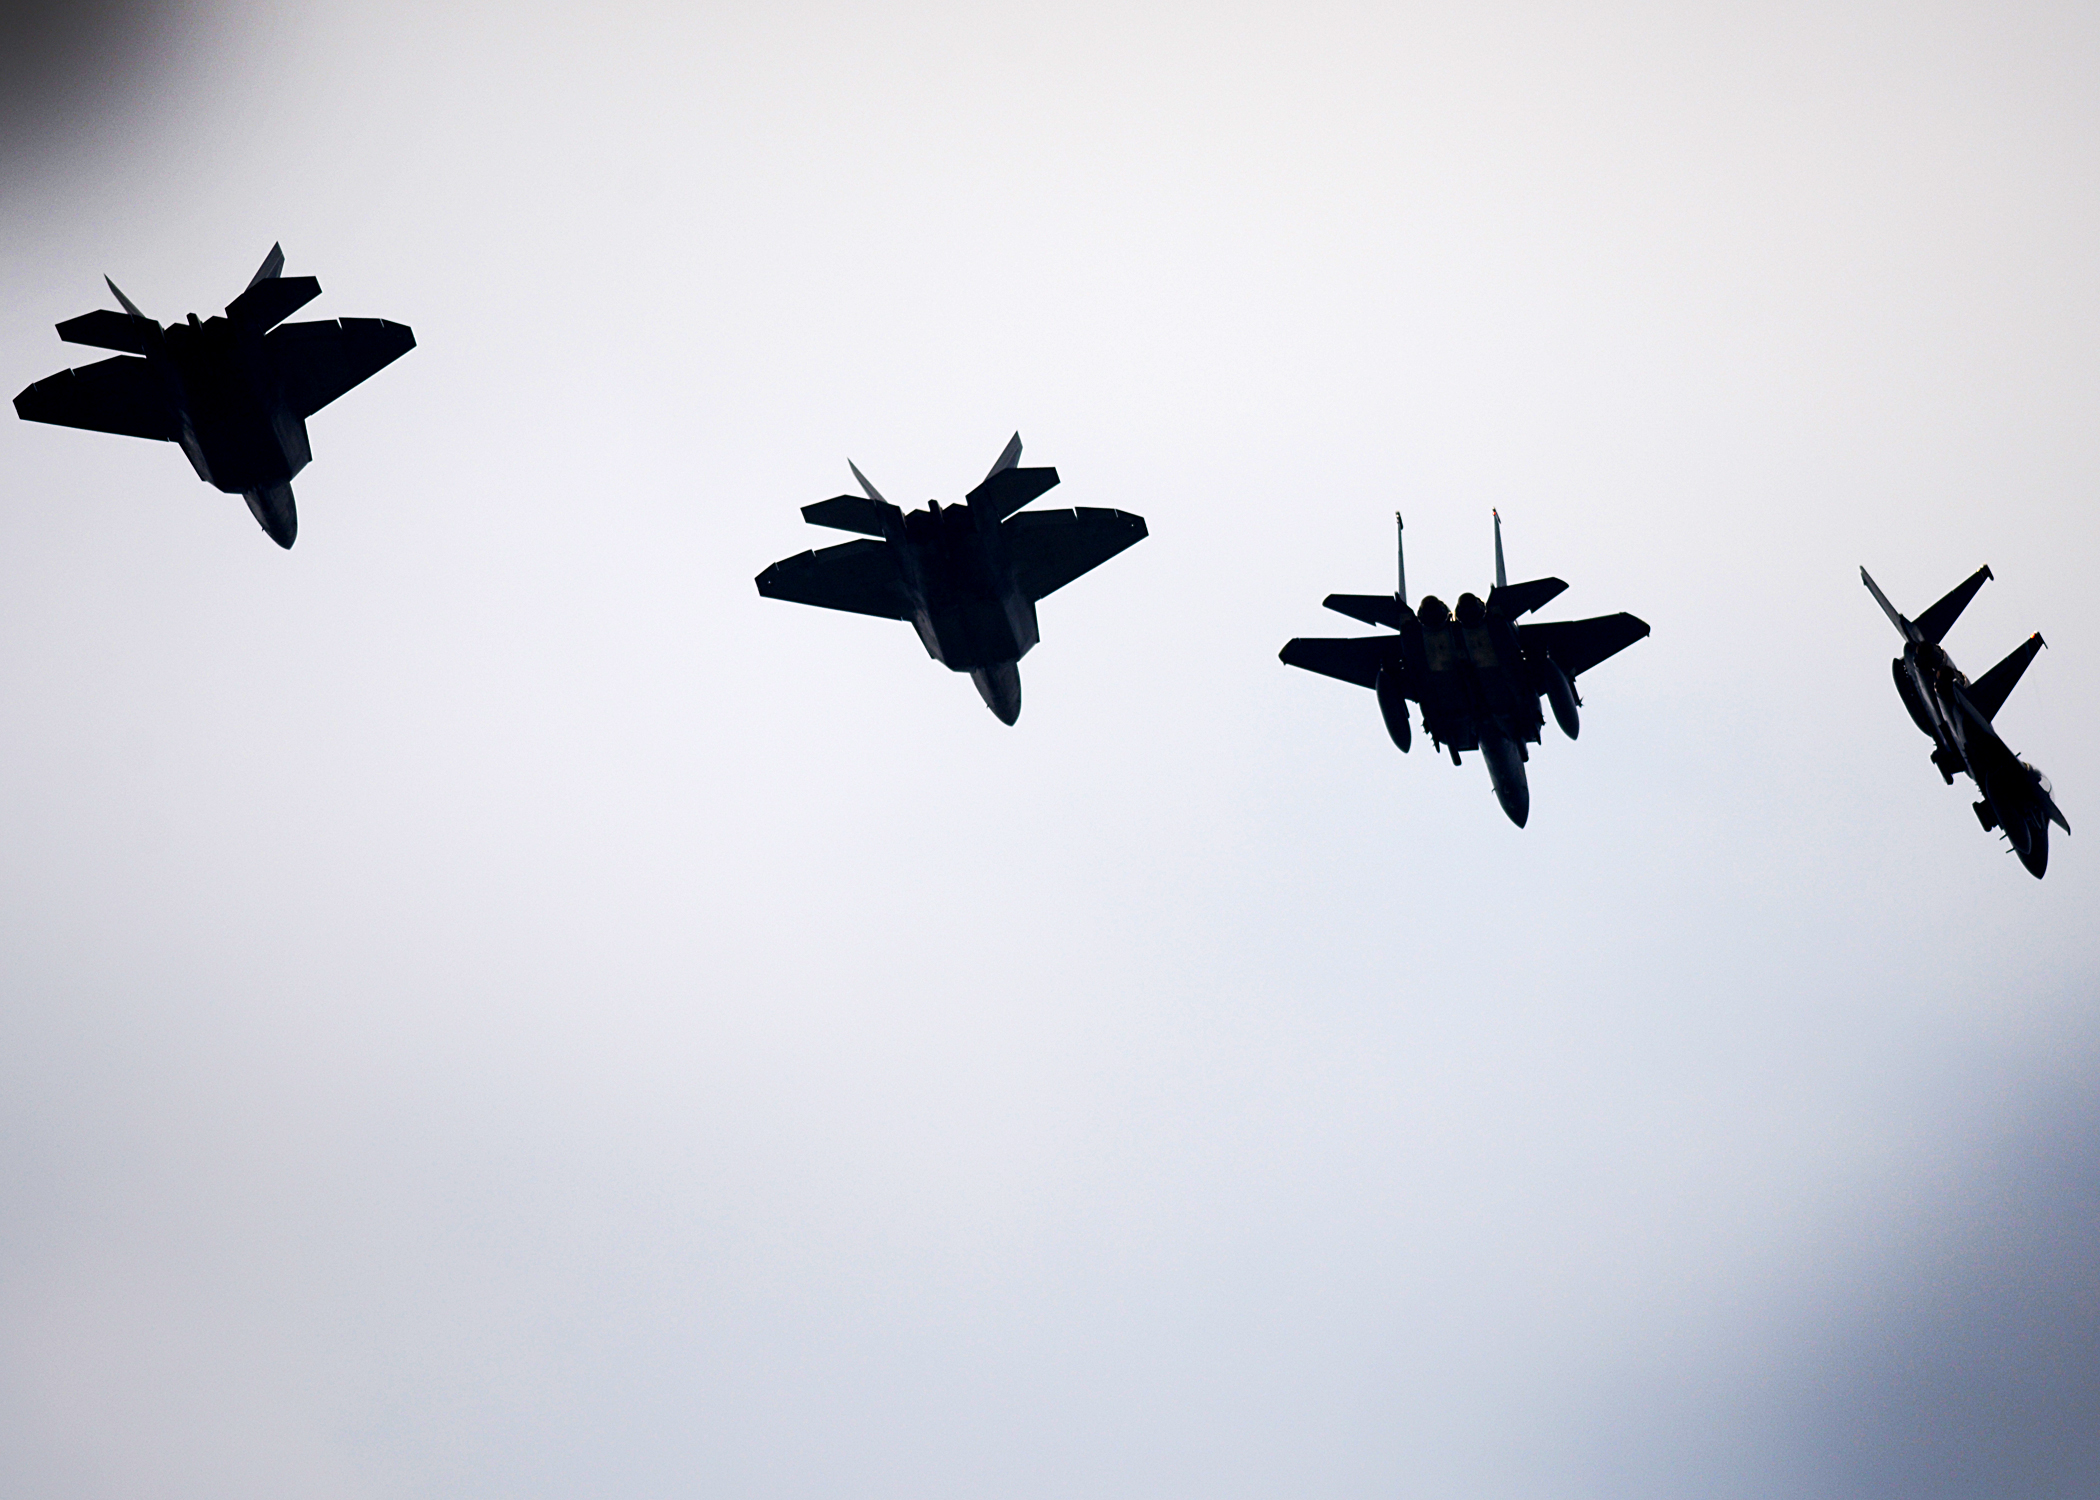 F-22 Raptors from the 95th Fighter Squadron conduct air-to